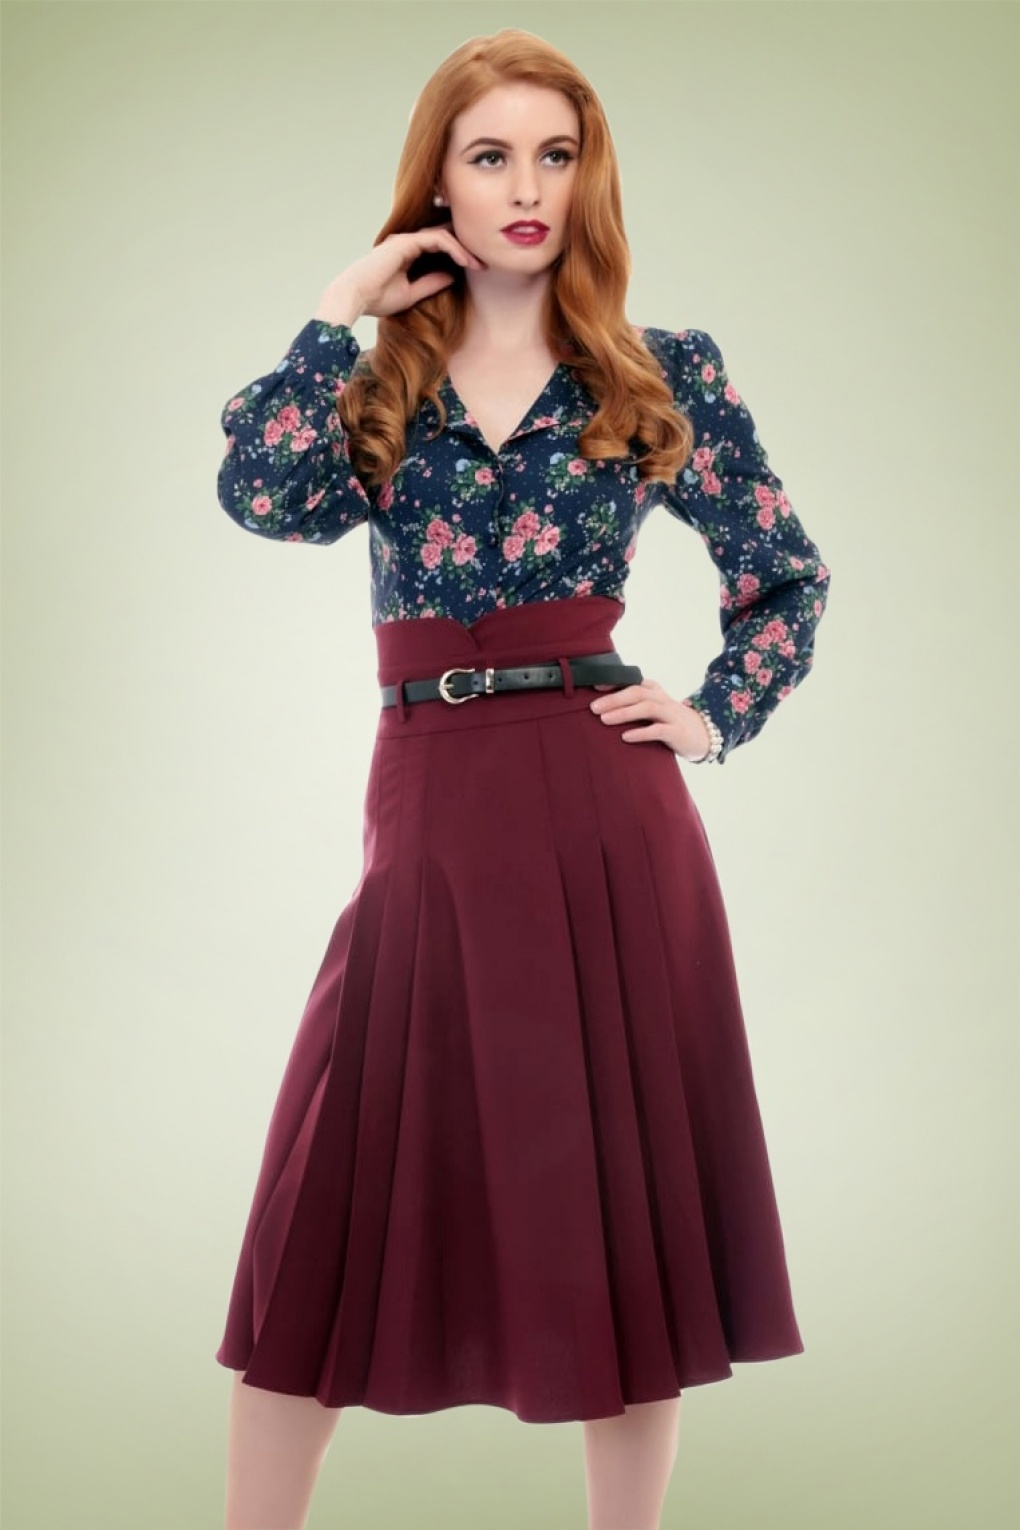 1940s Style Skirts- High Waist Vintage Skirts 40s Elsa Flared Skirt in Wine Red £59.51 AT vintagedancer.com